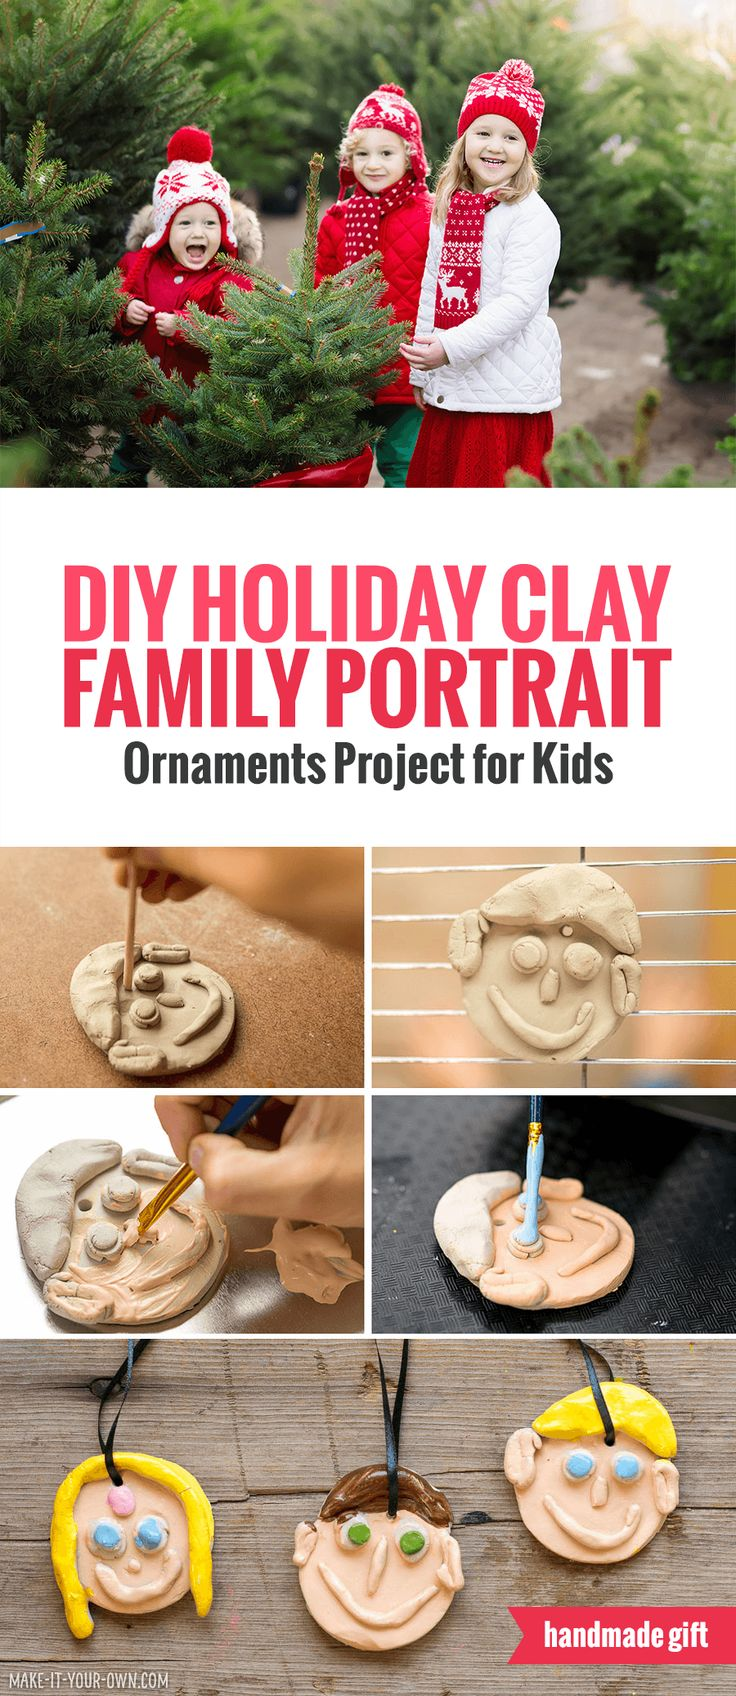 DIY Clay Family Portrait Ornaments - Holiday Project for Children *My kids would love this Christmas project